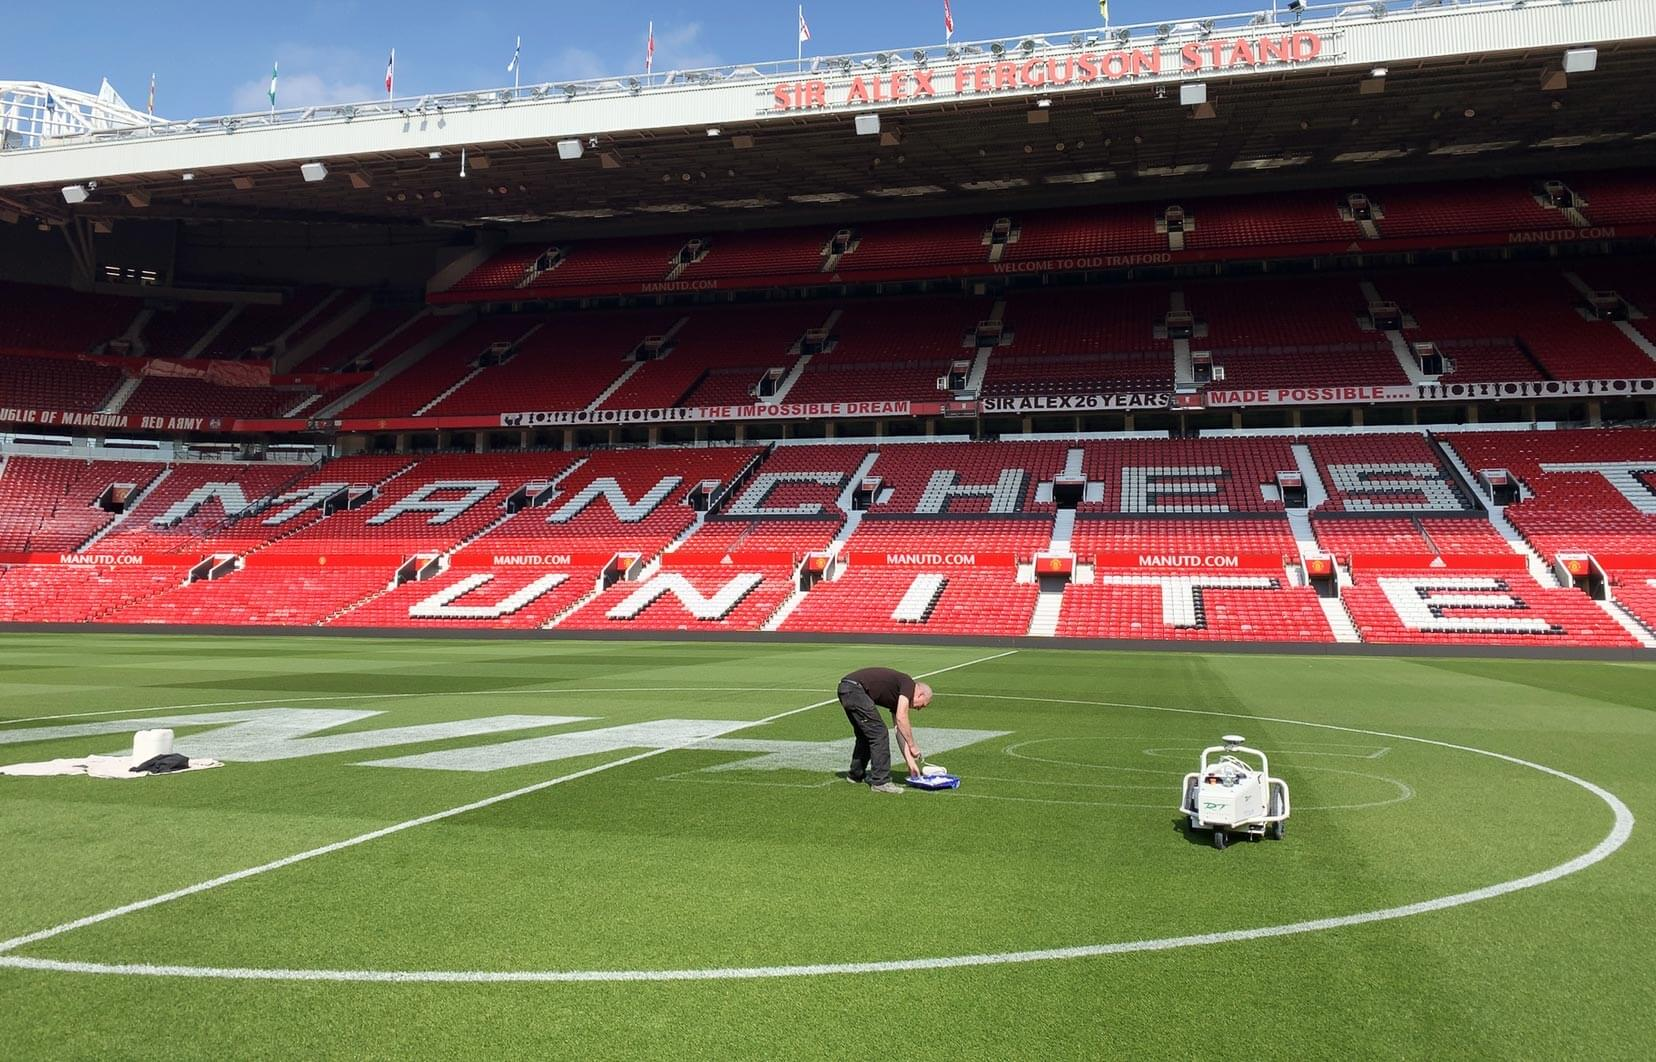 Logo marking Manchester United NHS Old Trafford